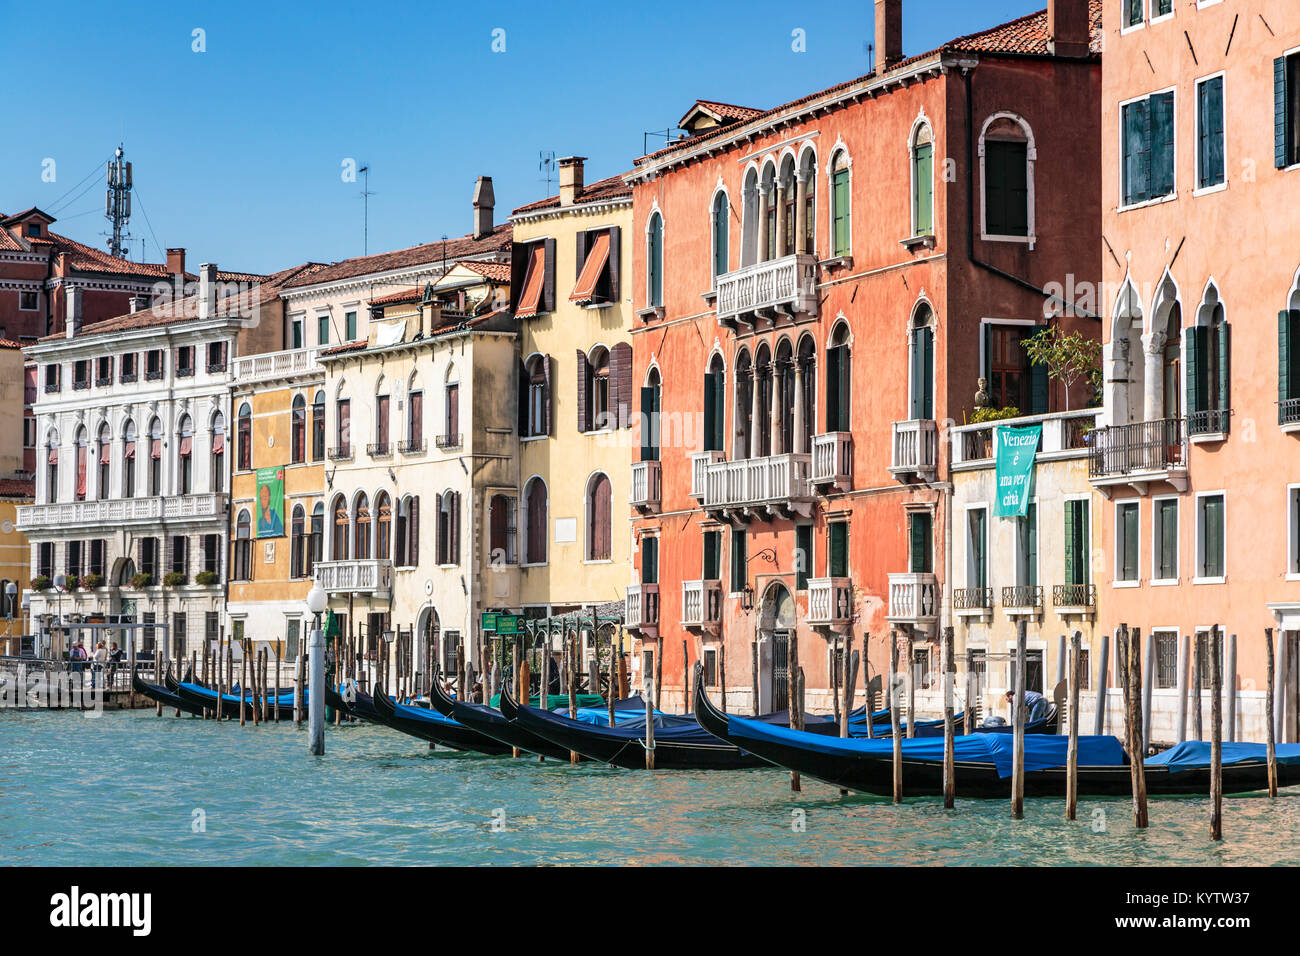 Buildings and boats along the Grand Canal in Veneto, Venice, Italy, Europe, - Stock Image